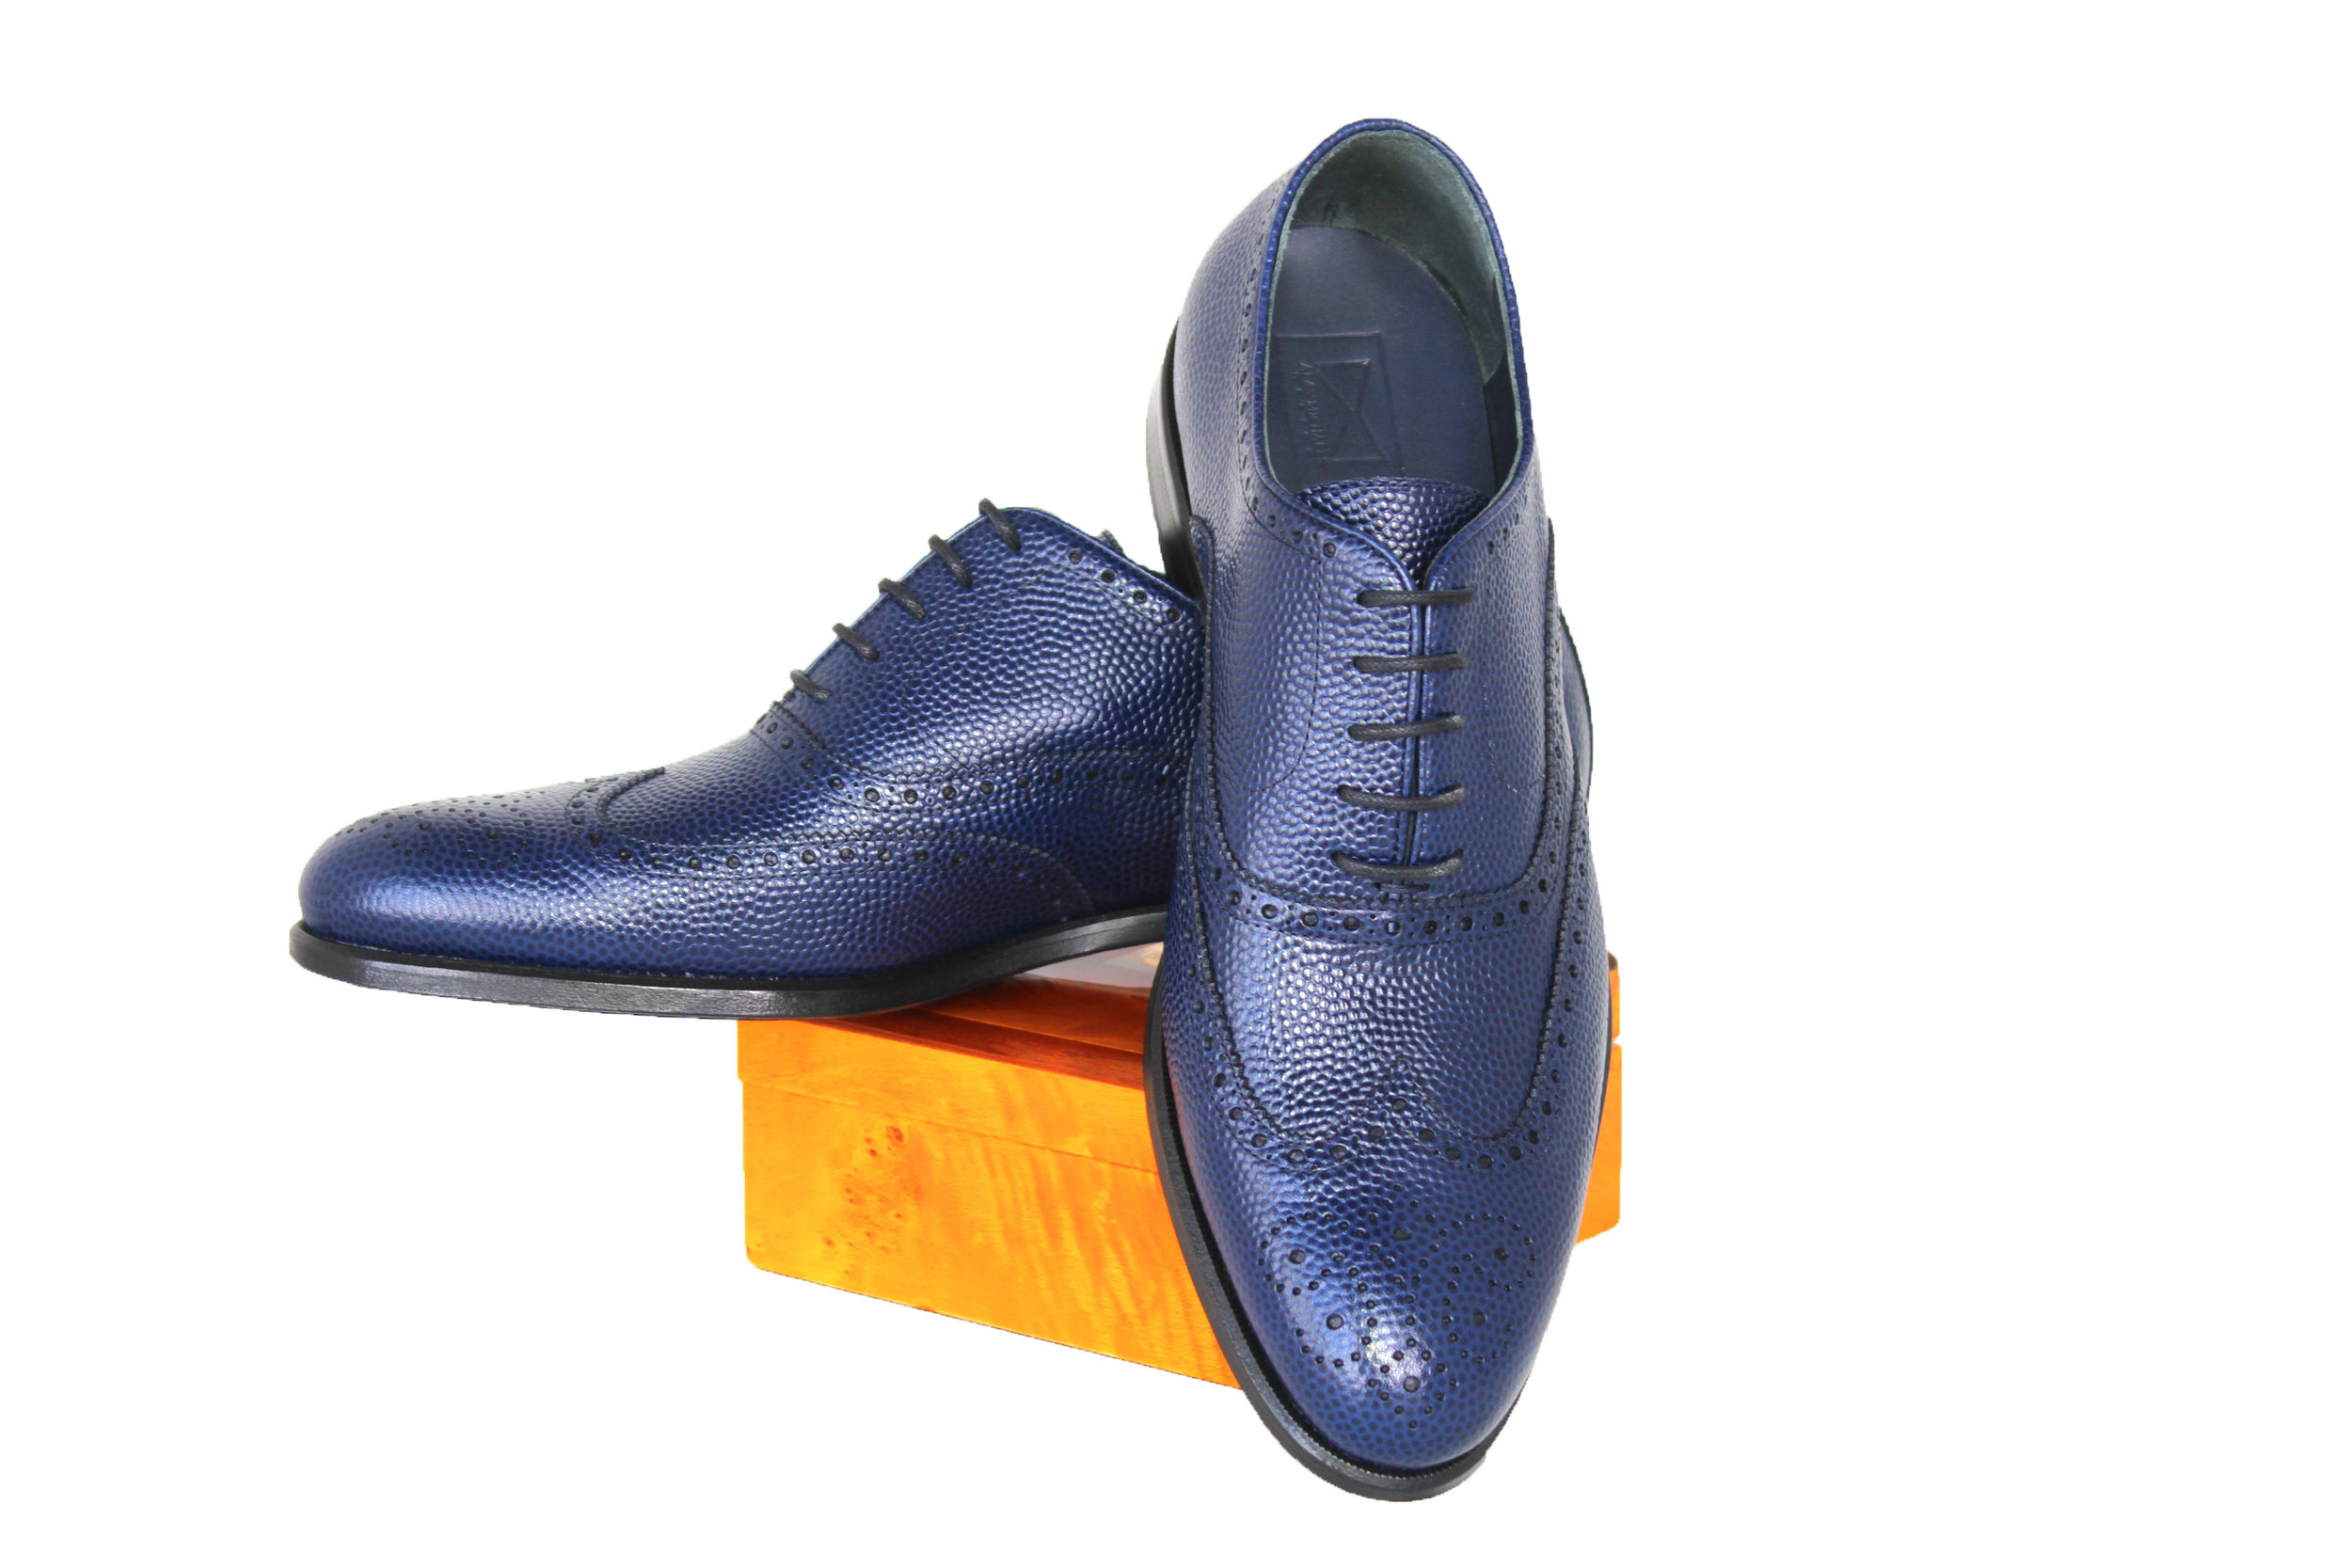 03 - BLUE PEBBLE GRAIN OXFORD WITH LOGO copy.jpg